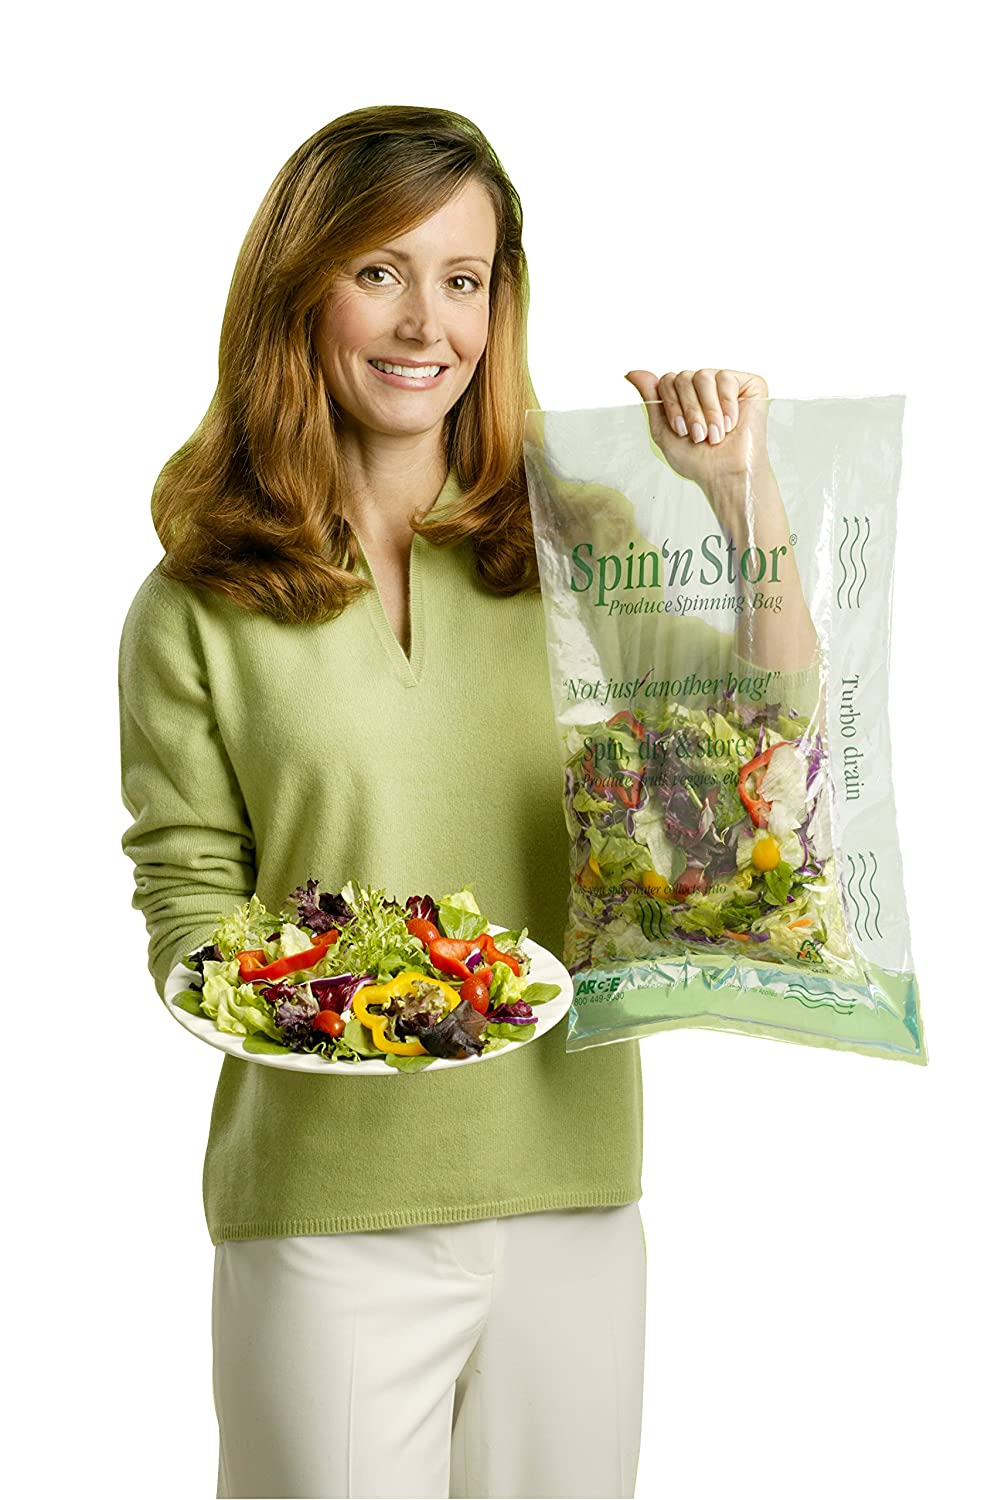 Argee RG900 Spin 'n Stor Reusable Salad Spinning Bags, 12-Pack RG900-12